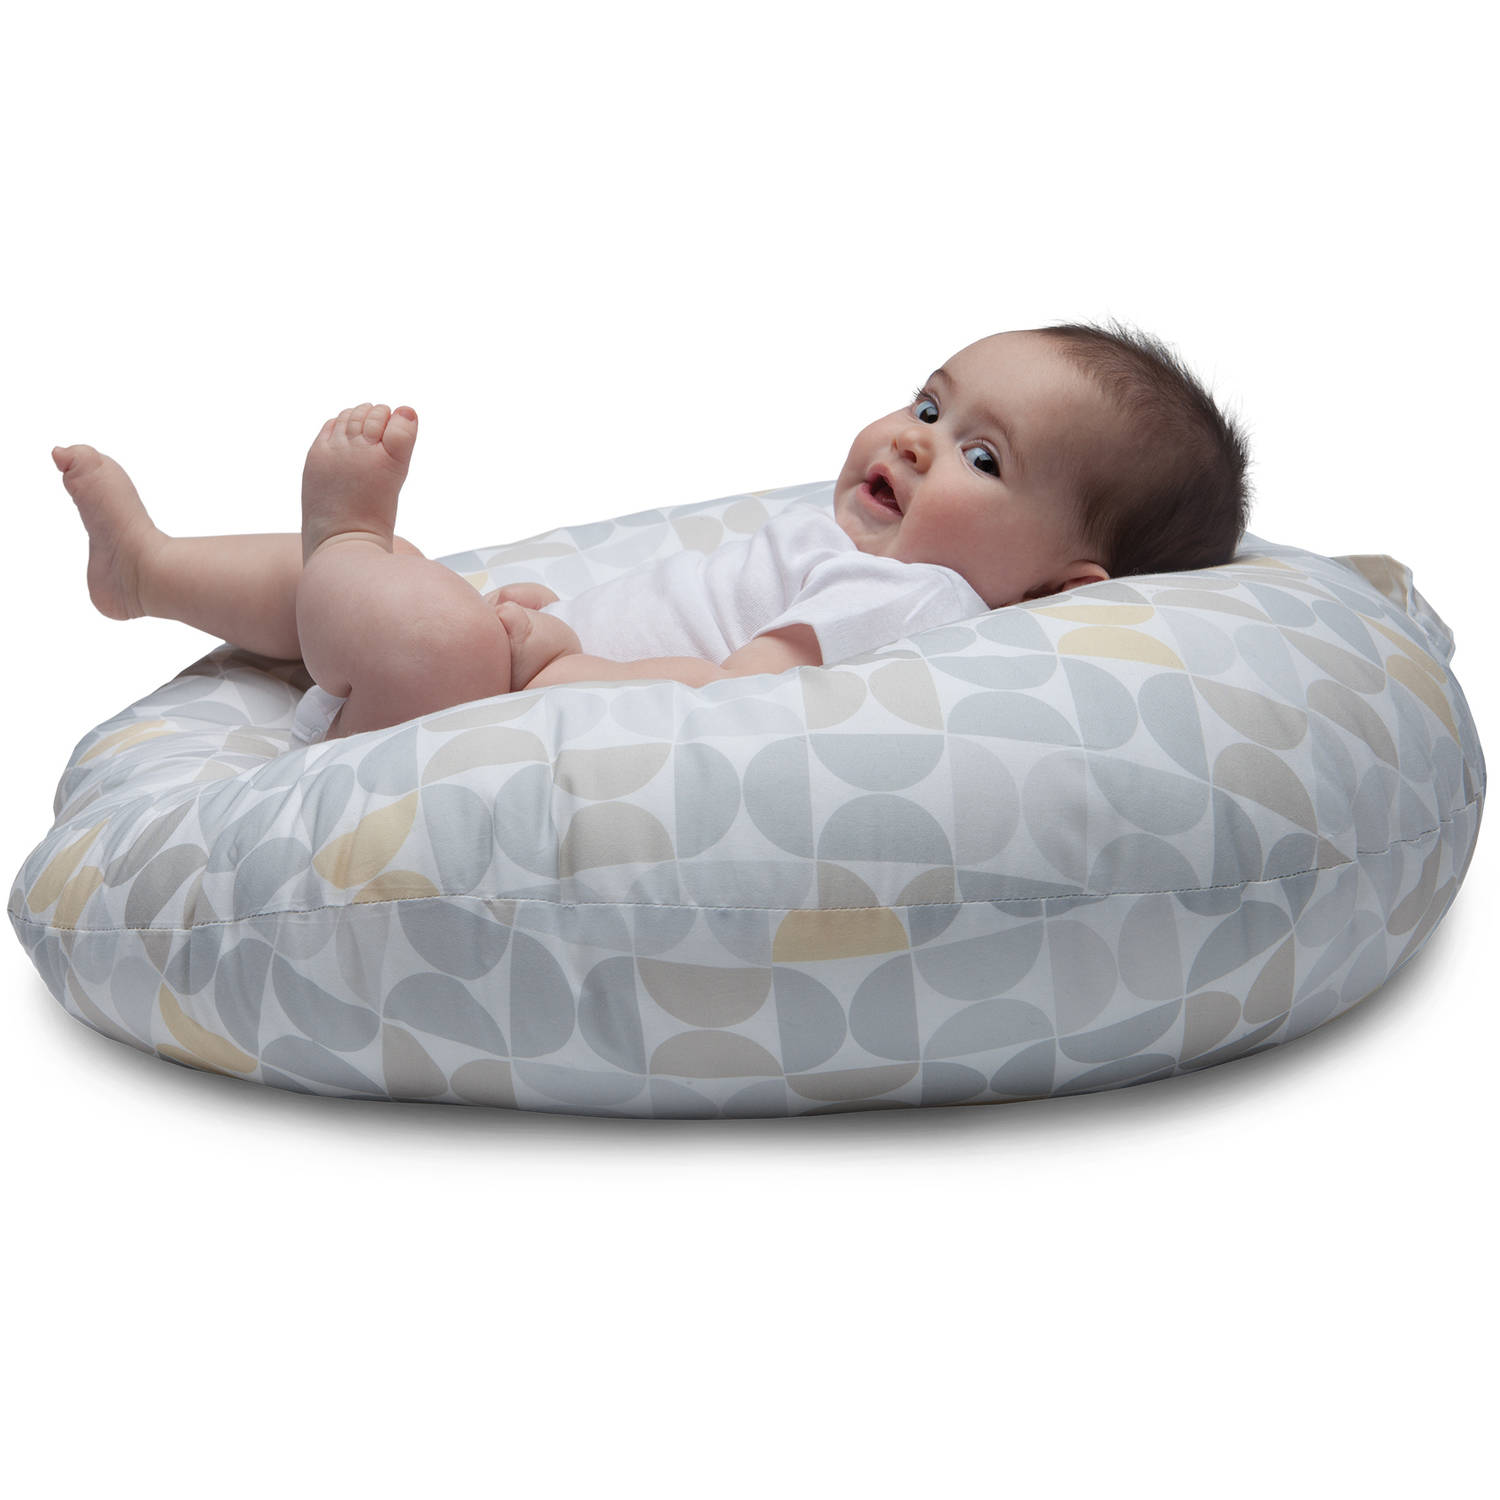 baby boppy chair recall buy covers ireland newborn lounger propeller cheapest deals and reviews